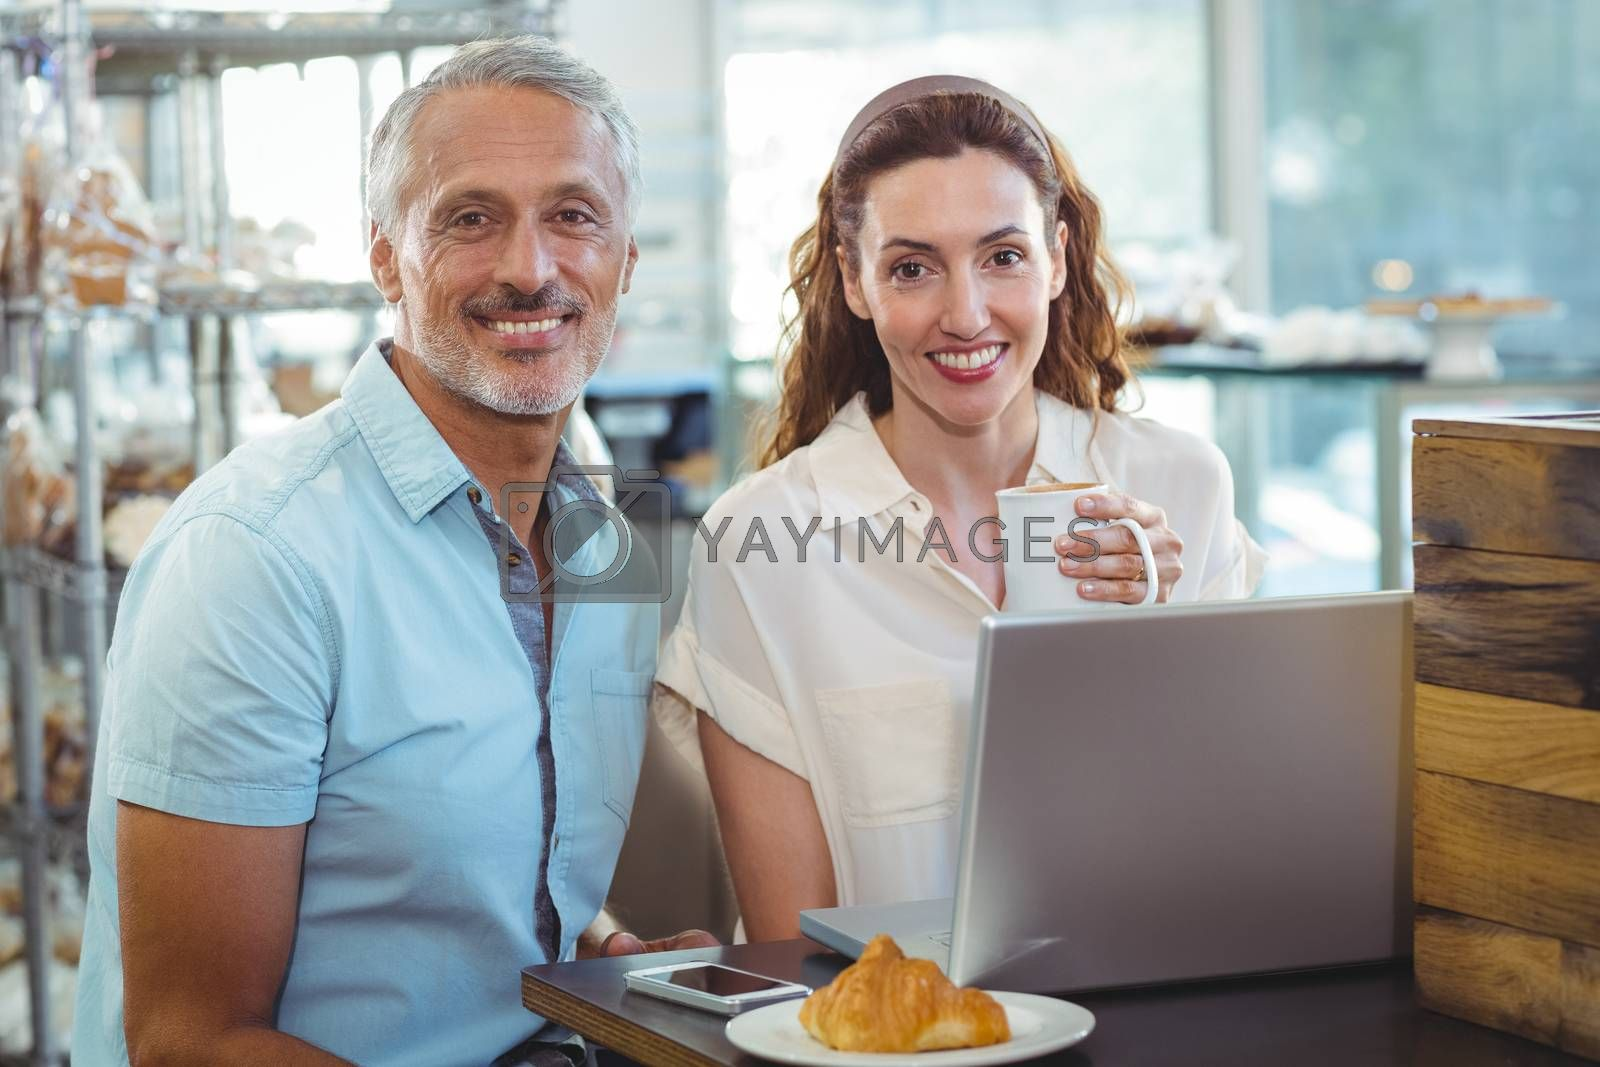 Royalty free image of Happy couple smiling at camera by Wavebreakmedia